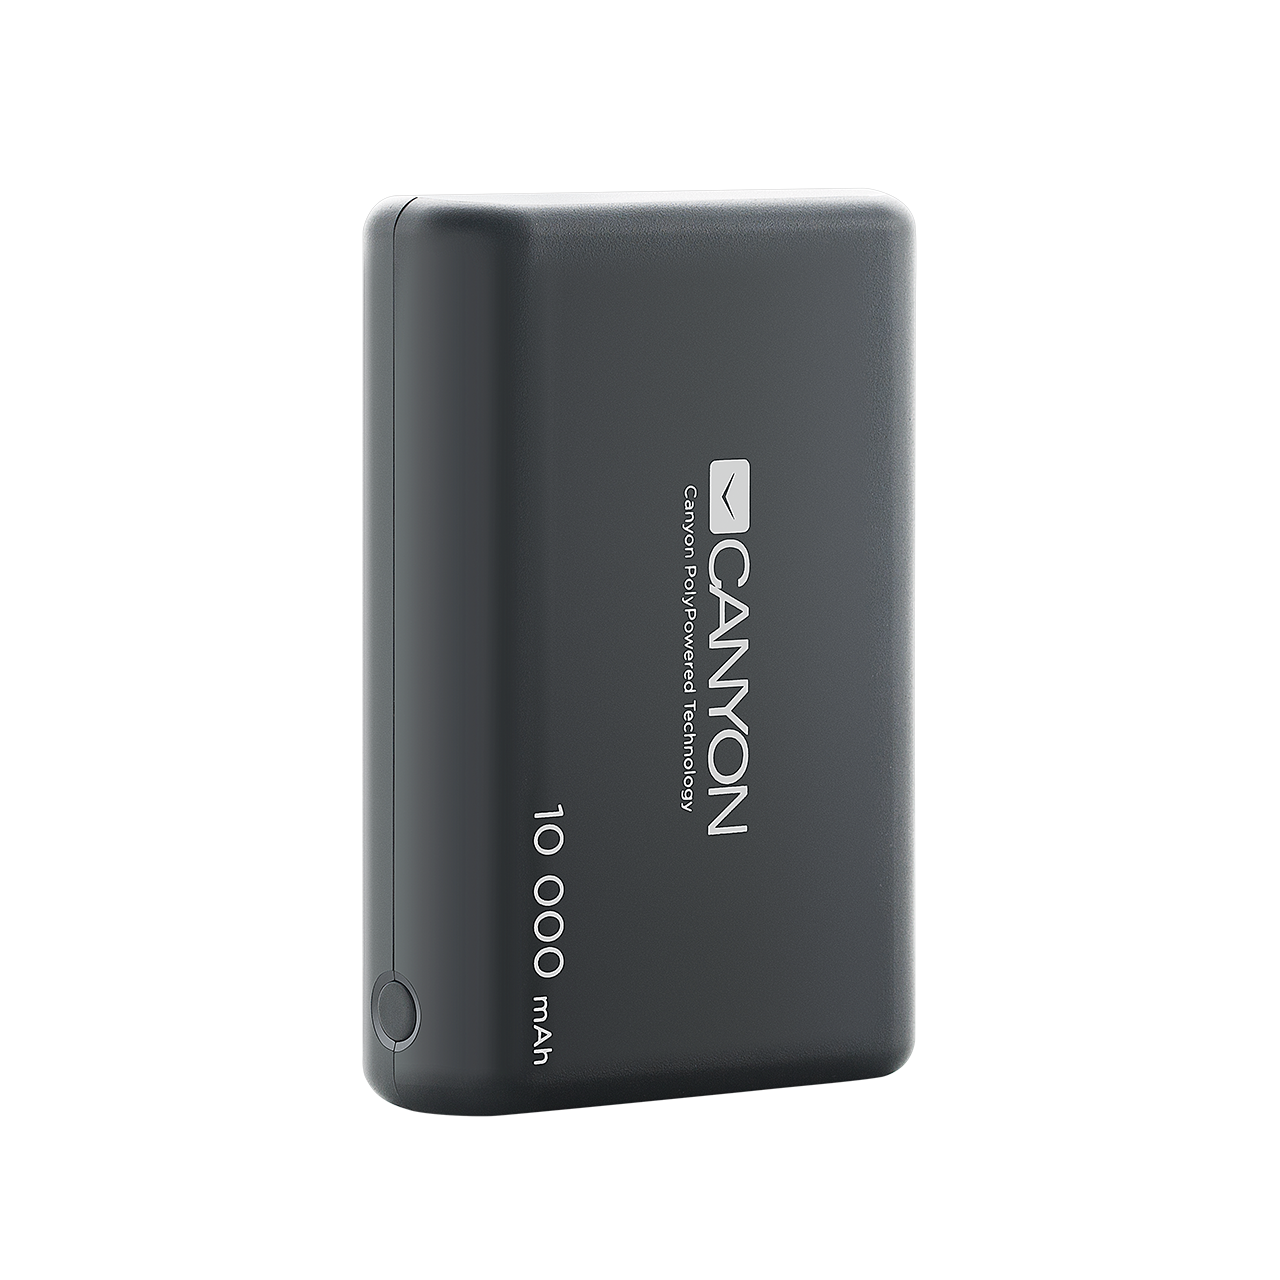 CANYON Power bank 10000mAh built-in 955570 Li-poly battery, Input 5V/2.1A, Output 5V/2.1A(Max), with Smart IC, Black, 3in1 USB cable length Powerbank, mobilā uzlādes iekārta